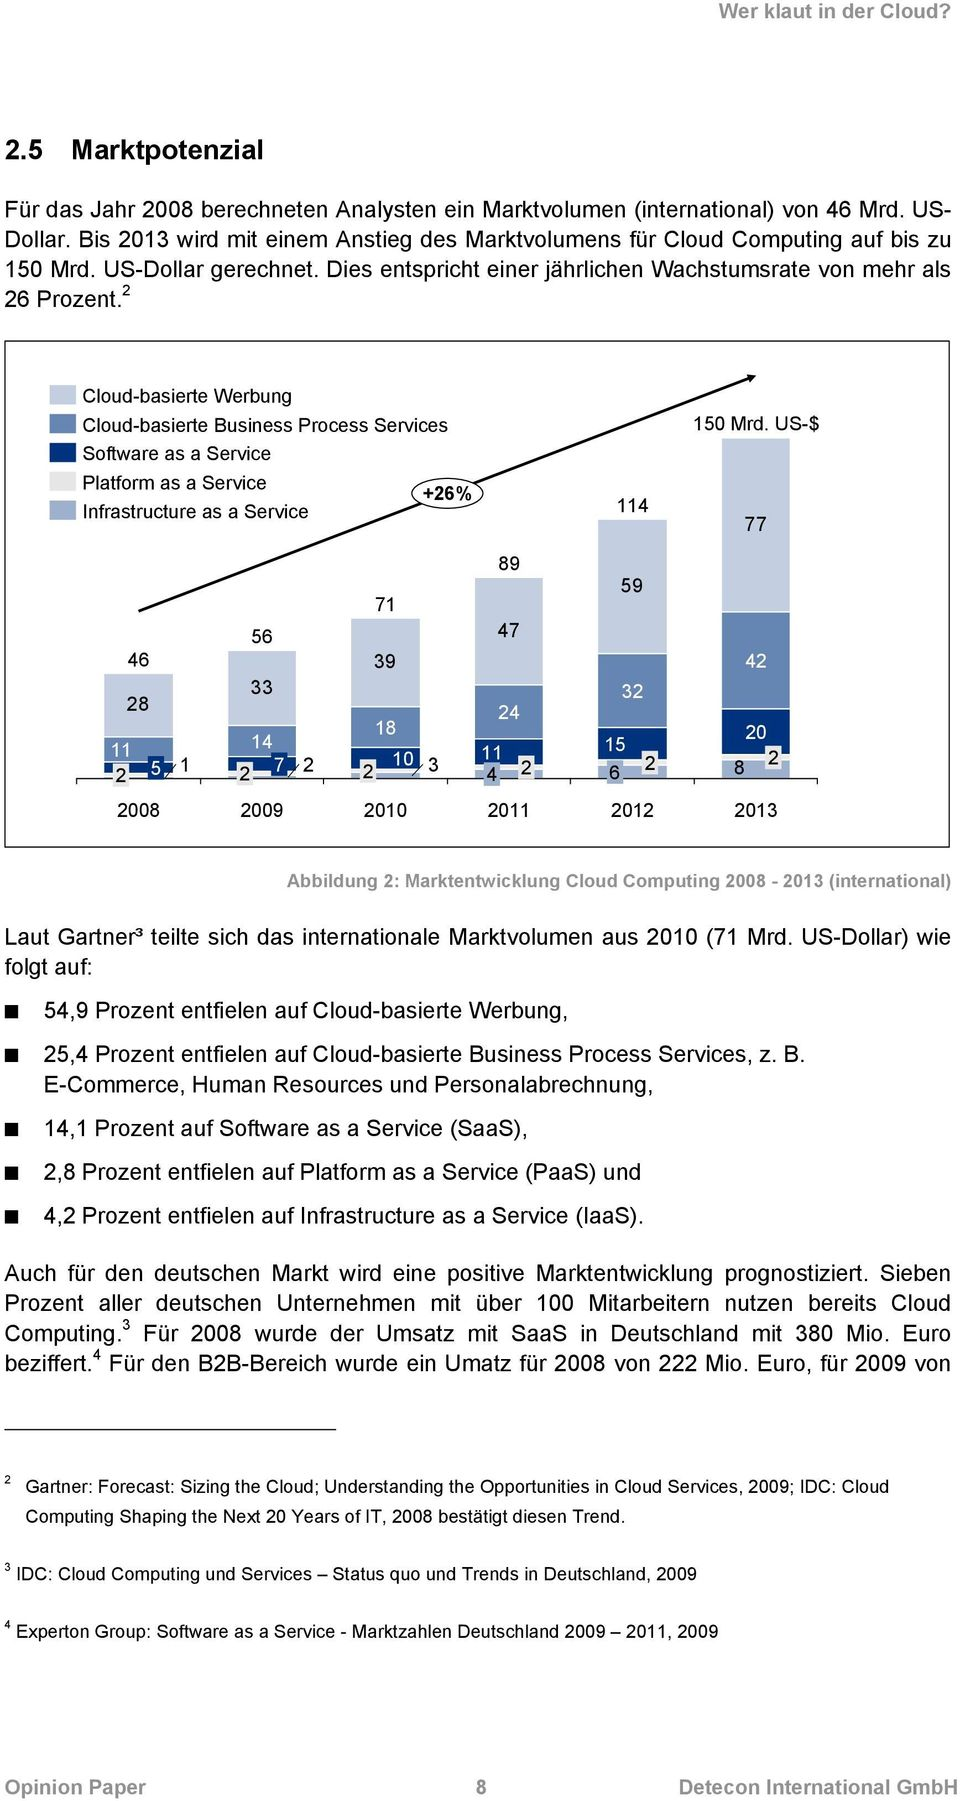 2 Cloud-basierte Werbung Cloud-basierte Business Process Services Software as a Service Platform as a Service +26% Infrastructure as a Service 114 150 Mrd.